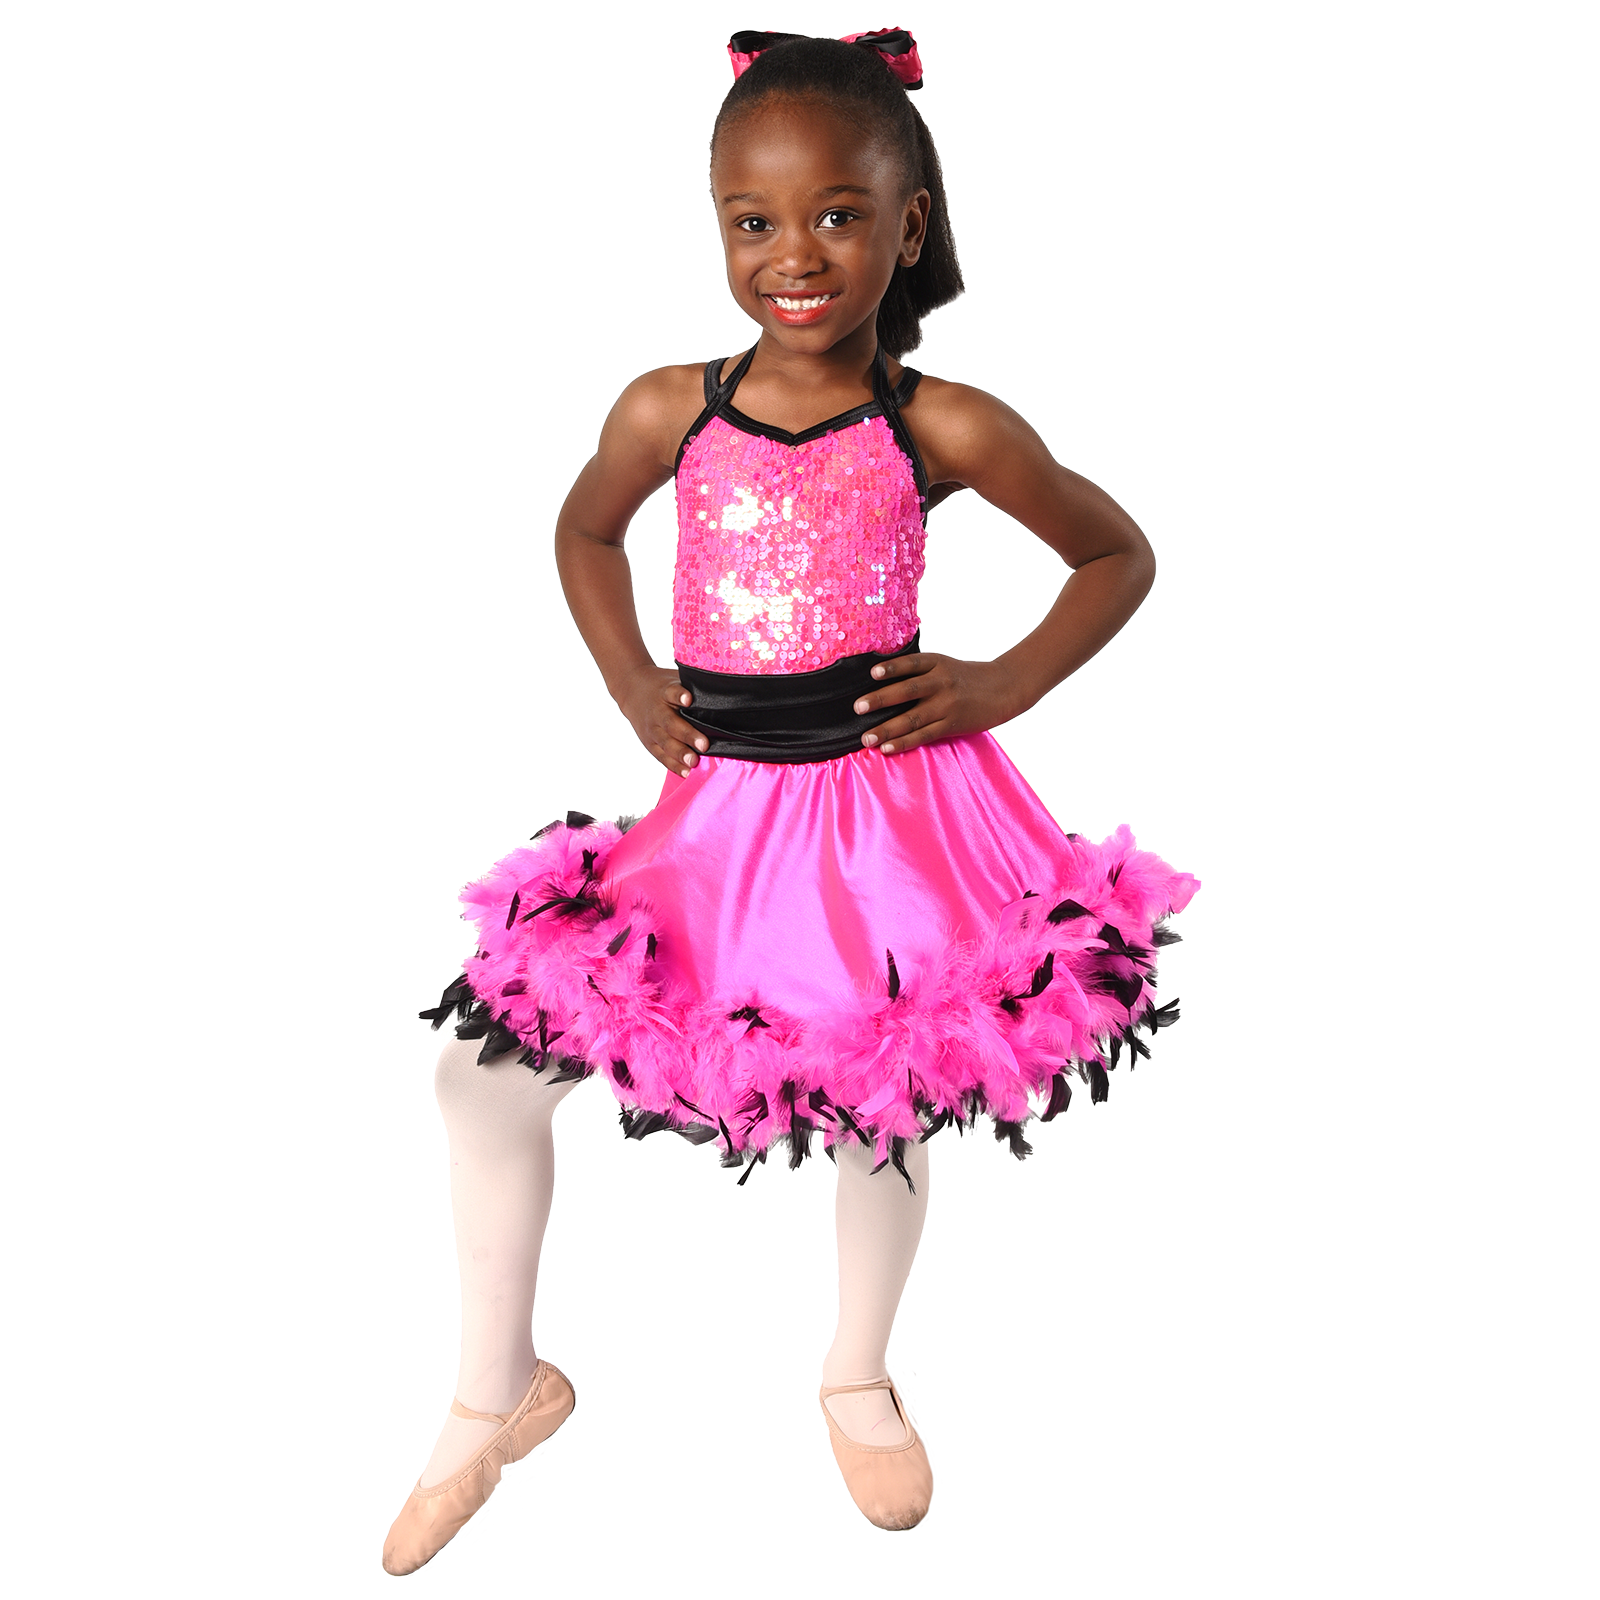 young African American girl ballerina dancer in costume